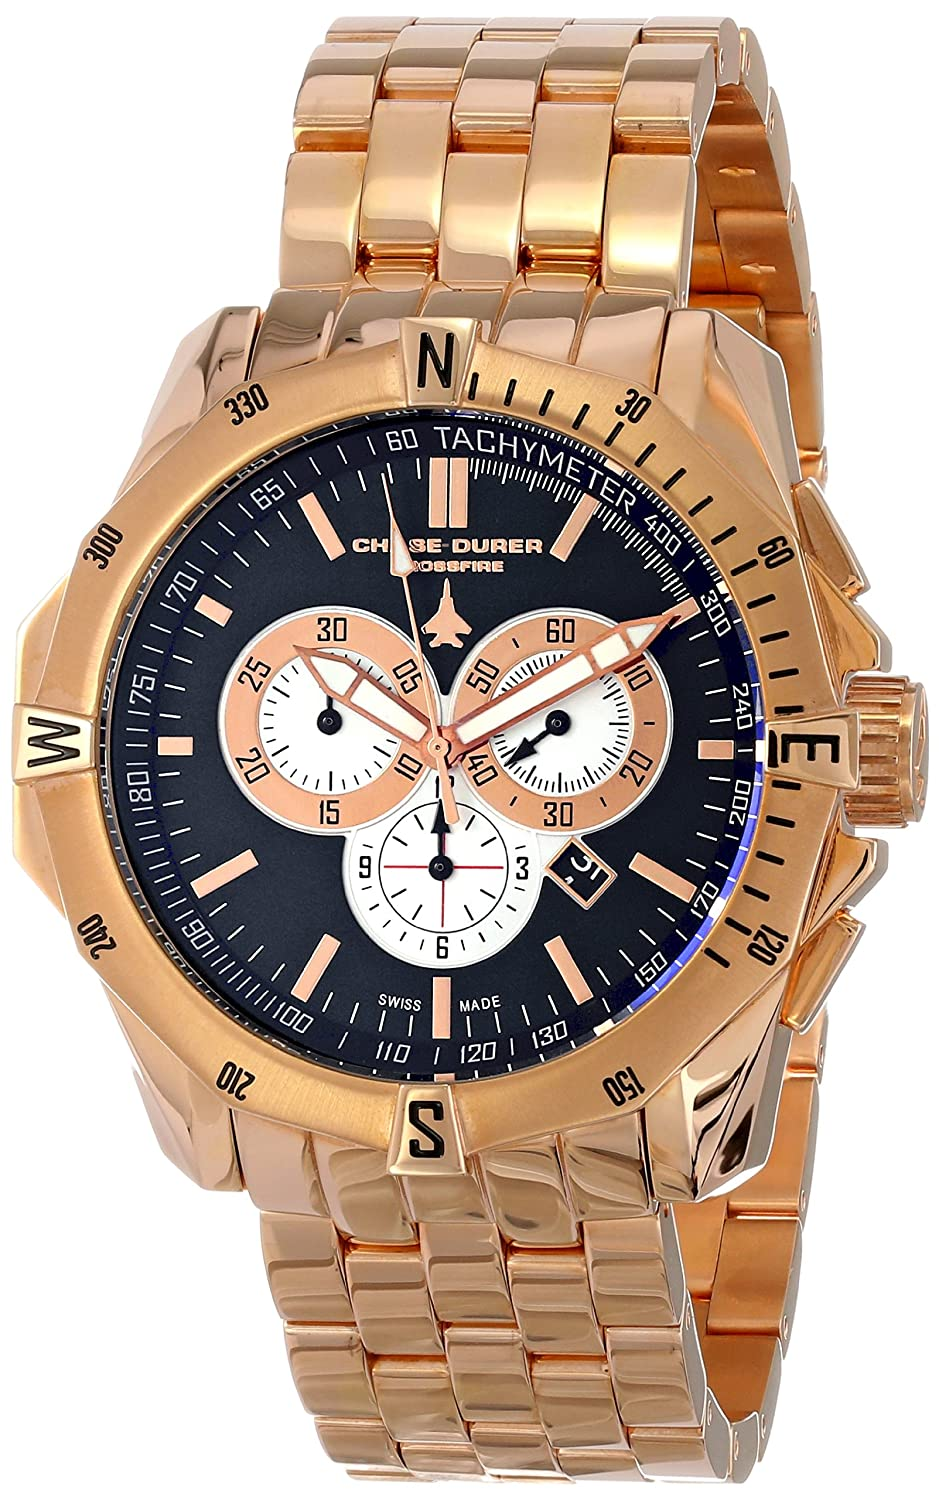 Amazon.com: Chase-Durer Men's 850.8BRG Crossfire 18K Rose Gold-Plated  Stainless Steel Chronograph Watch: Watches